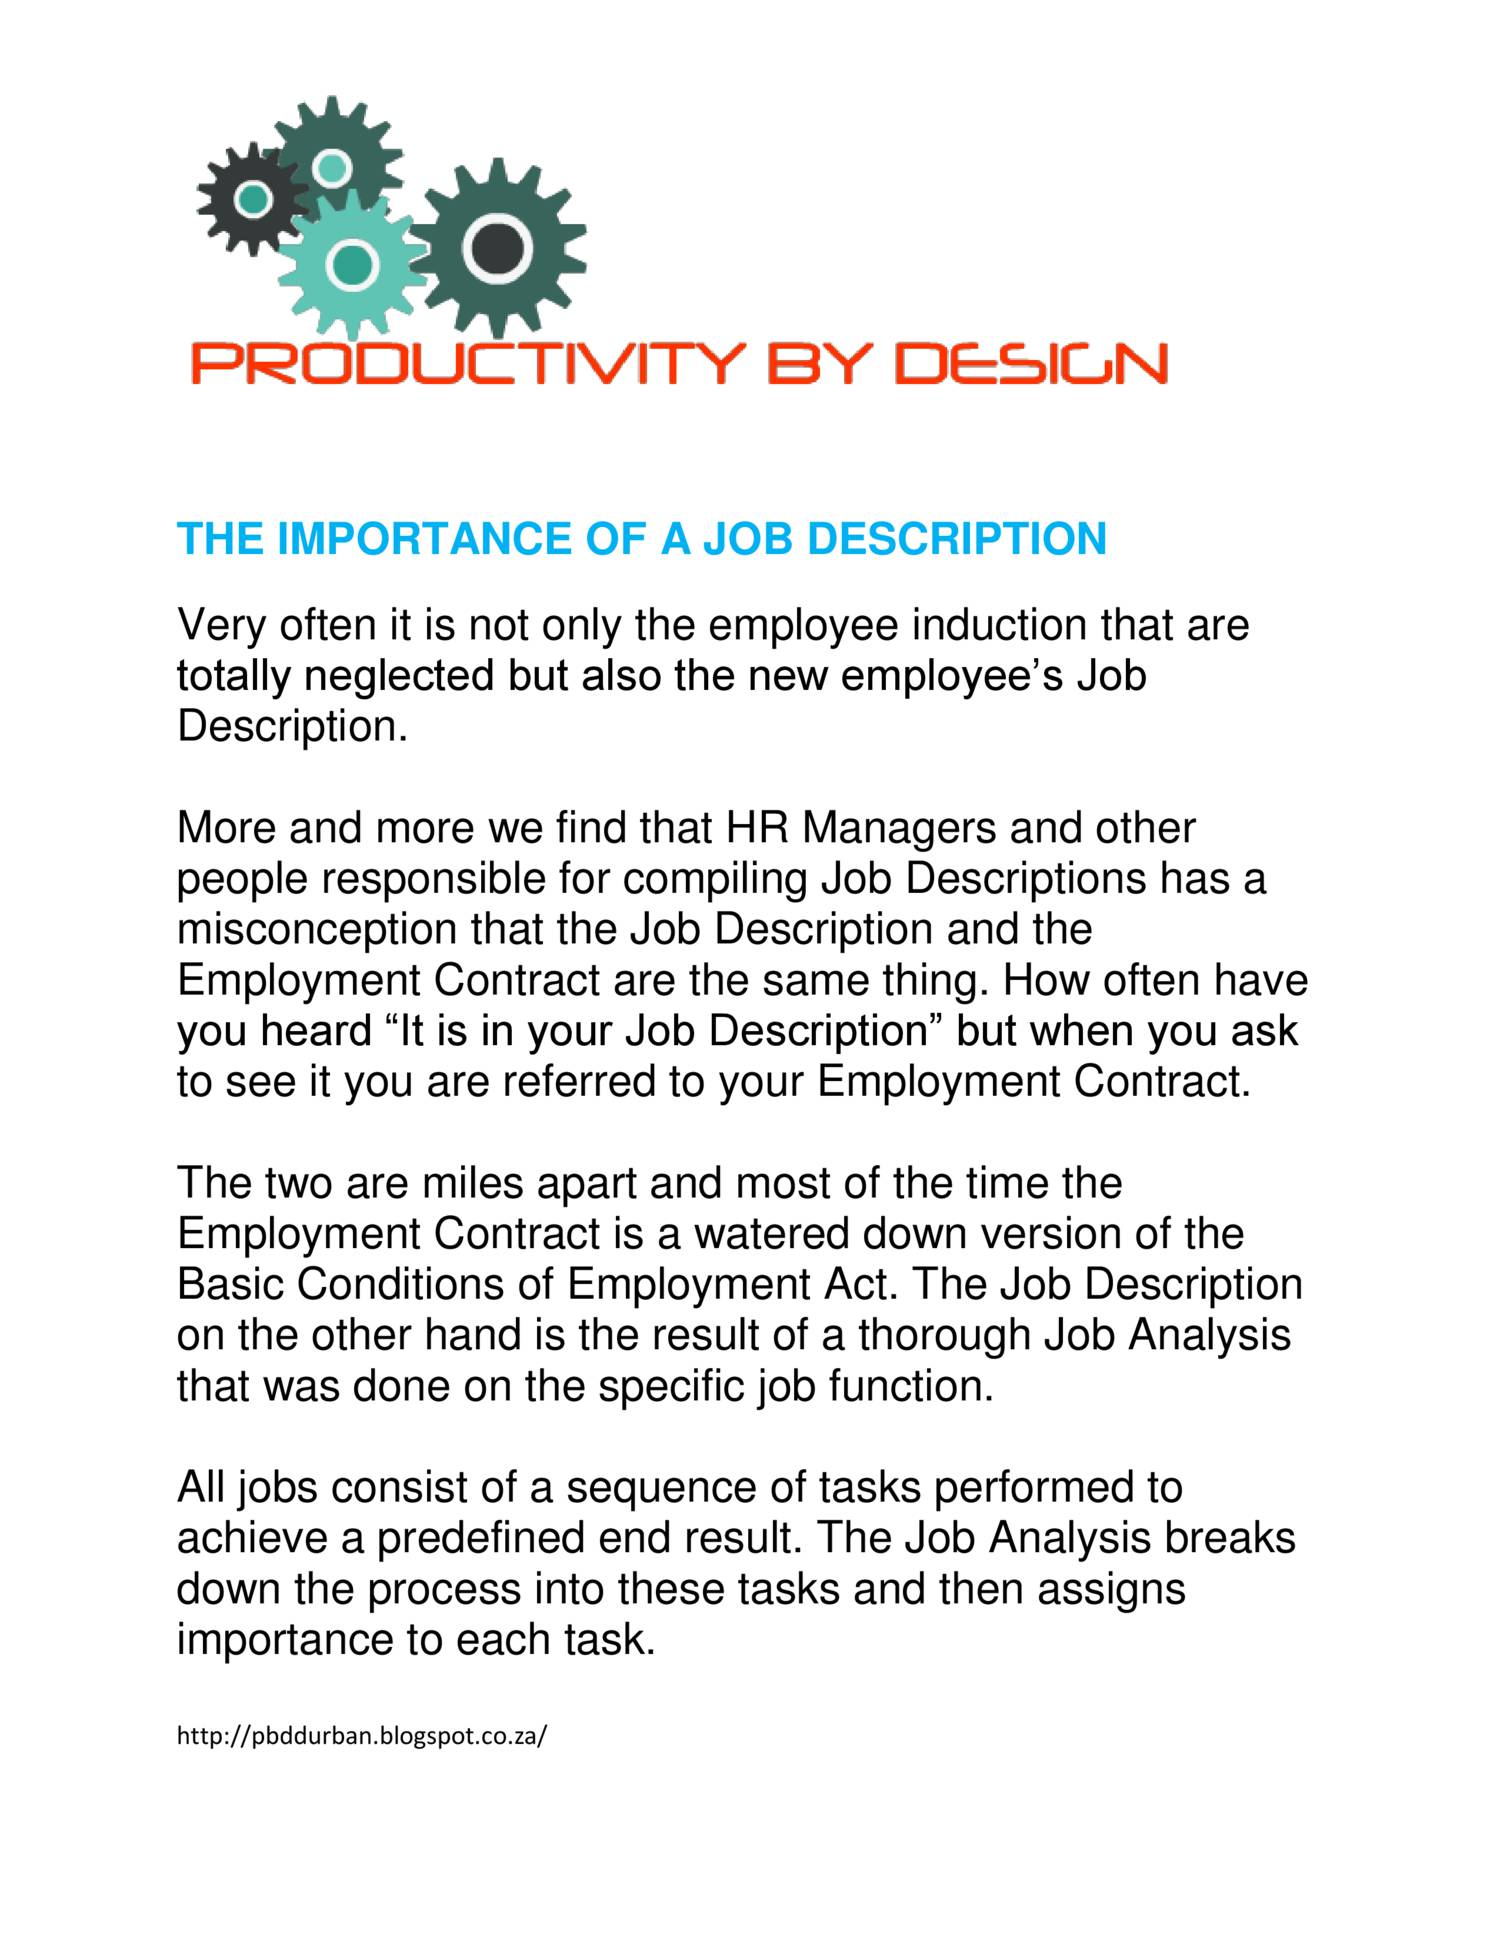 THE IMPORTANCE OF A JOB DESCRIPTIONdoc